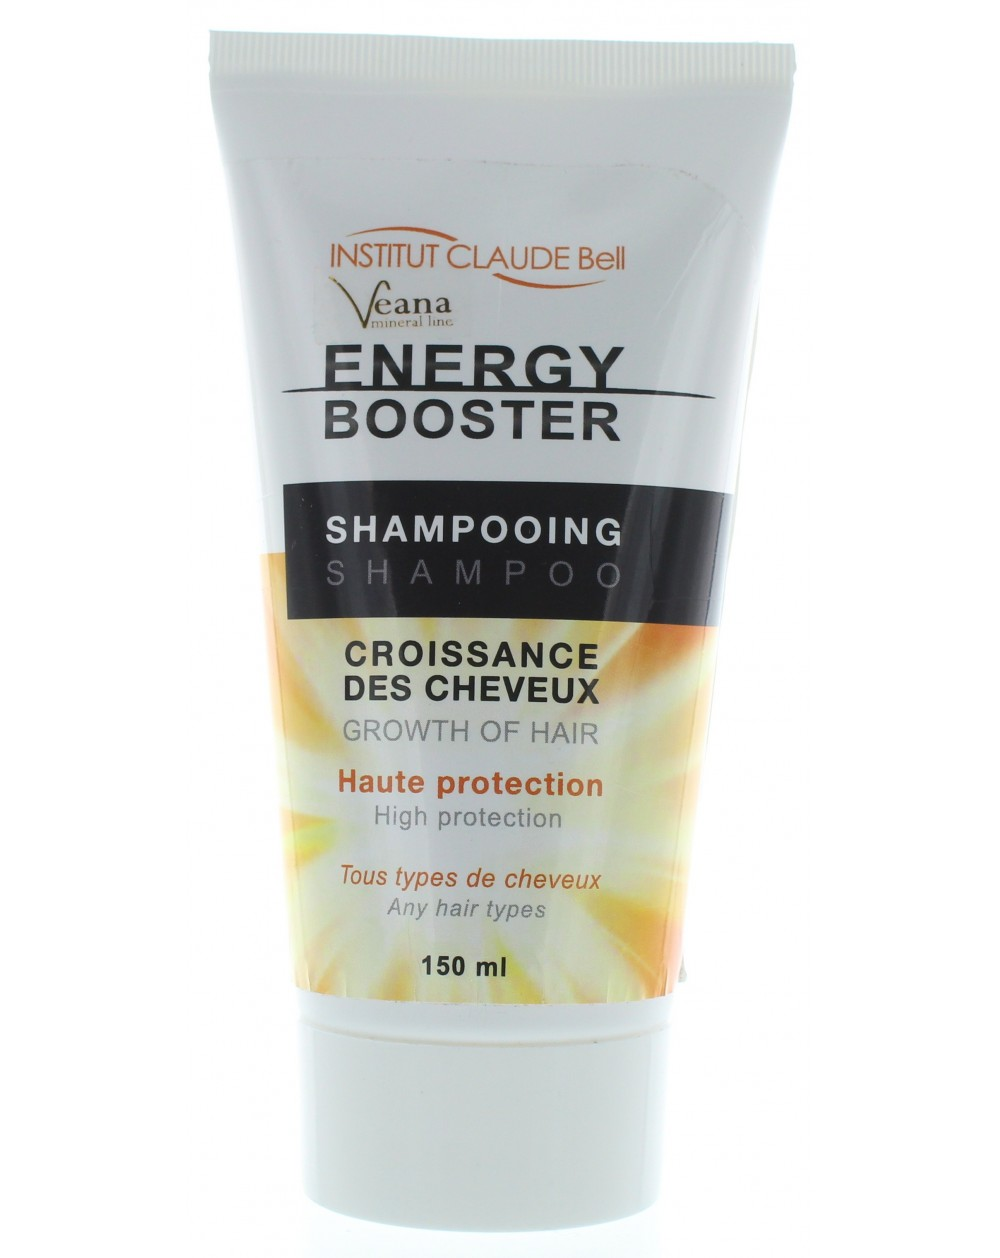 Energy Booster Haarwachstums-Shampoo